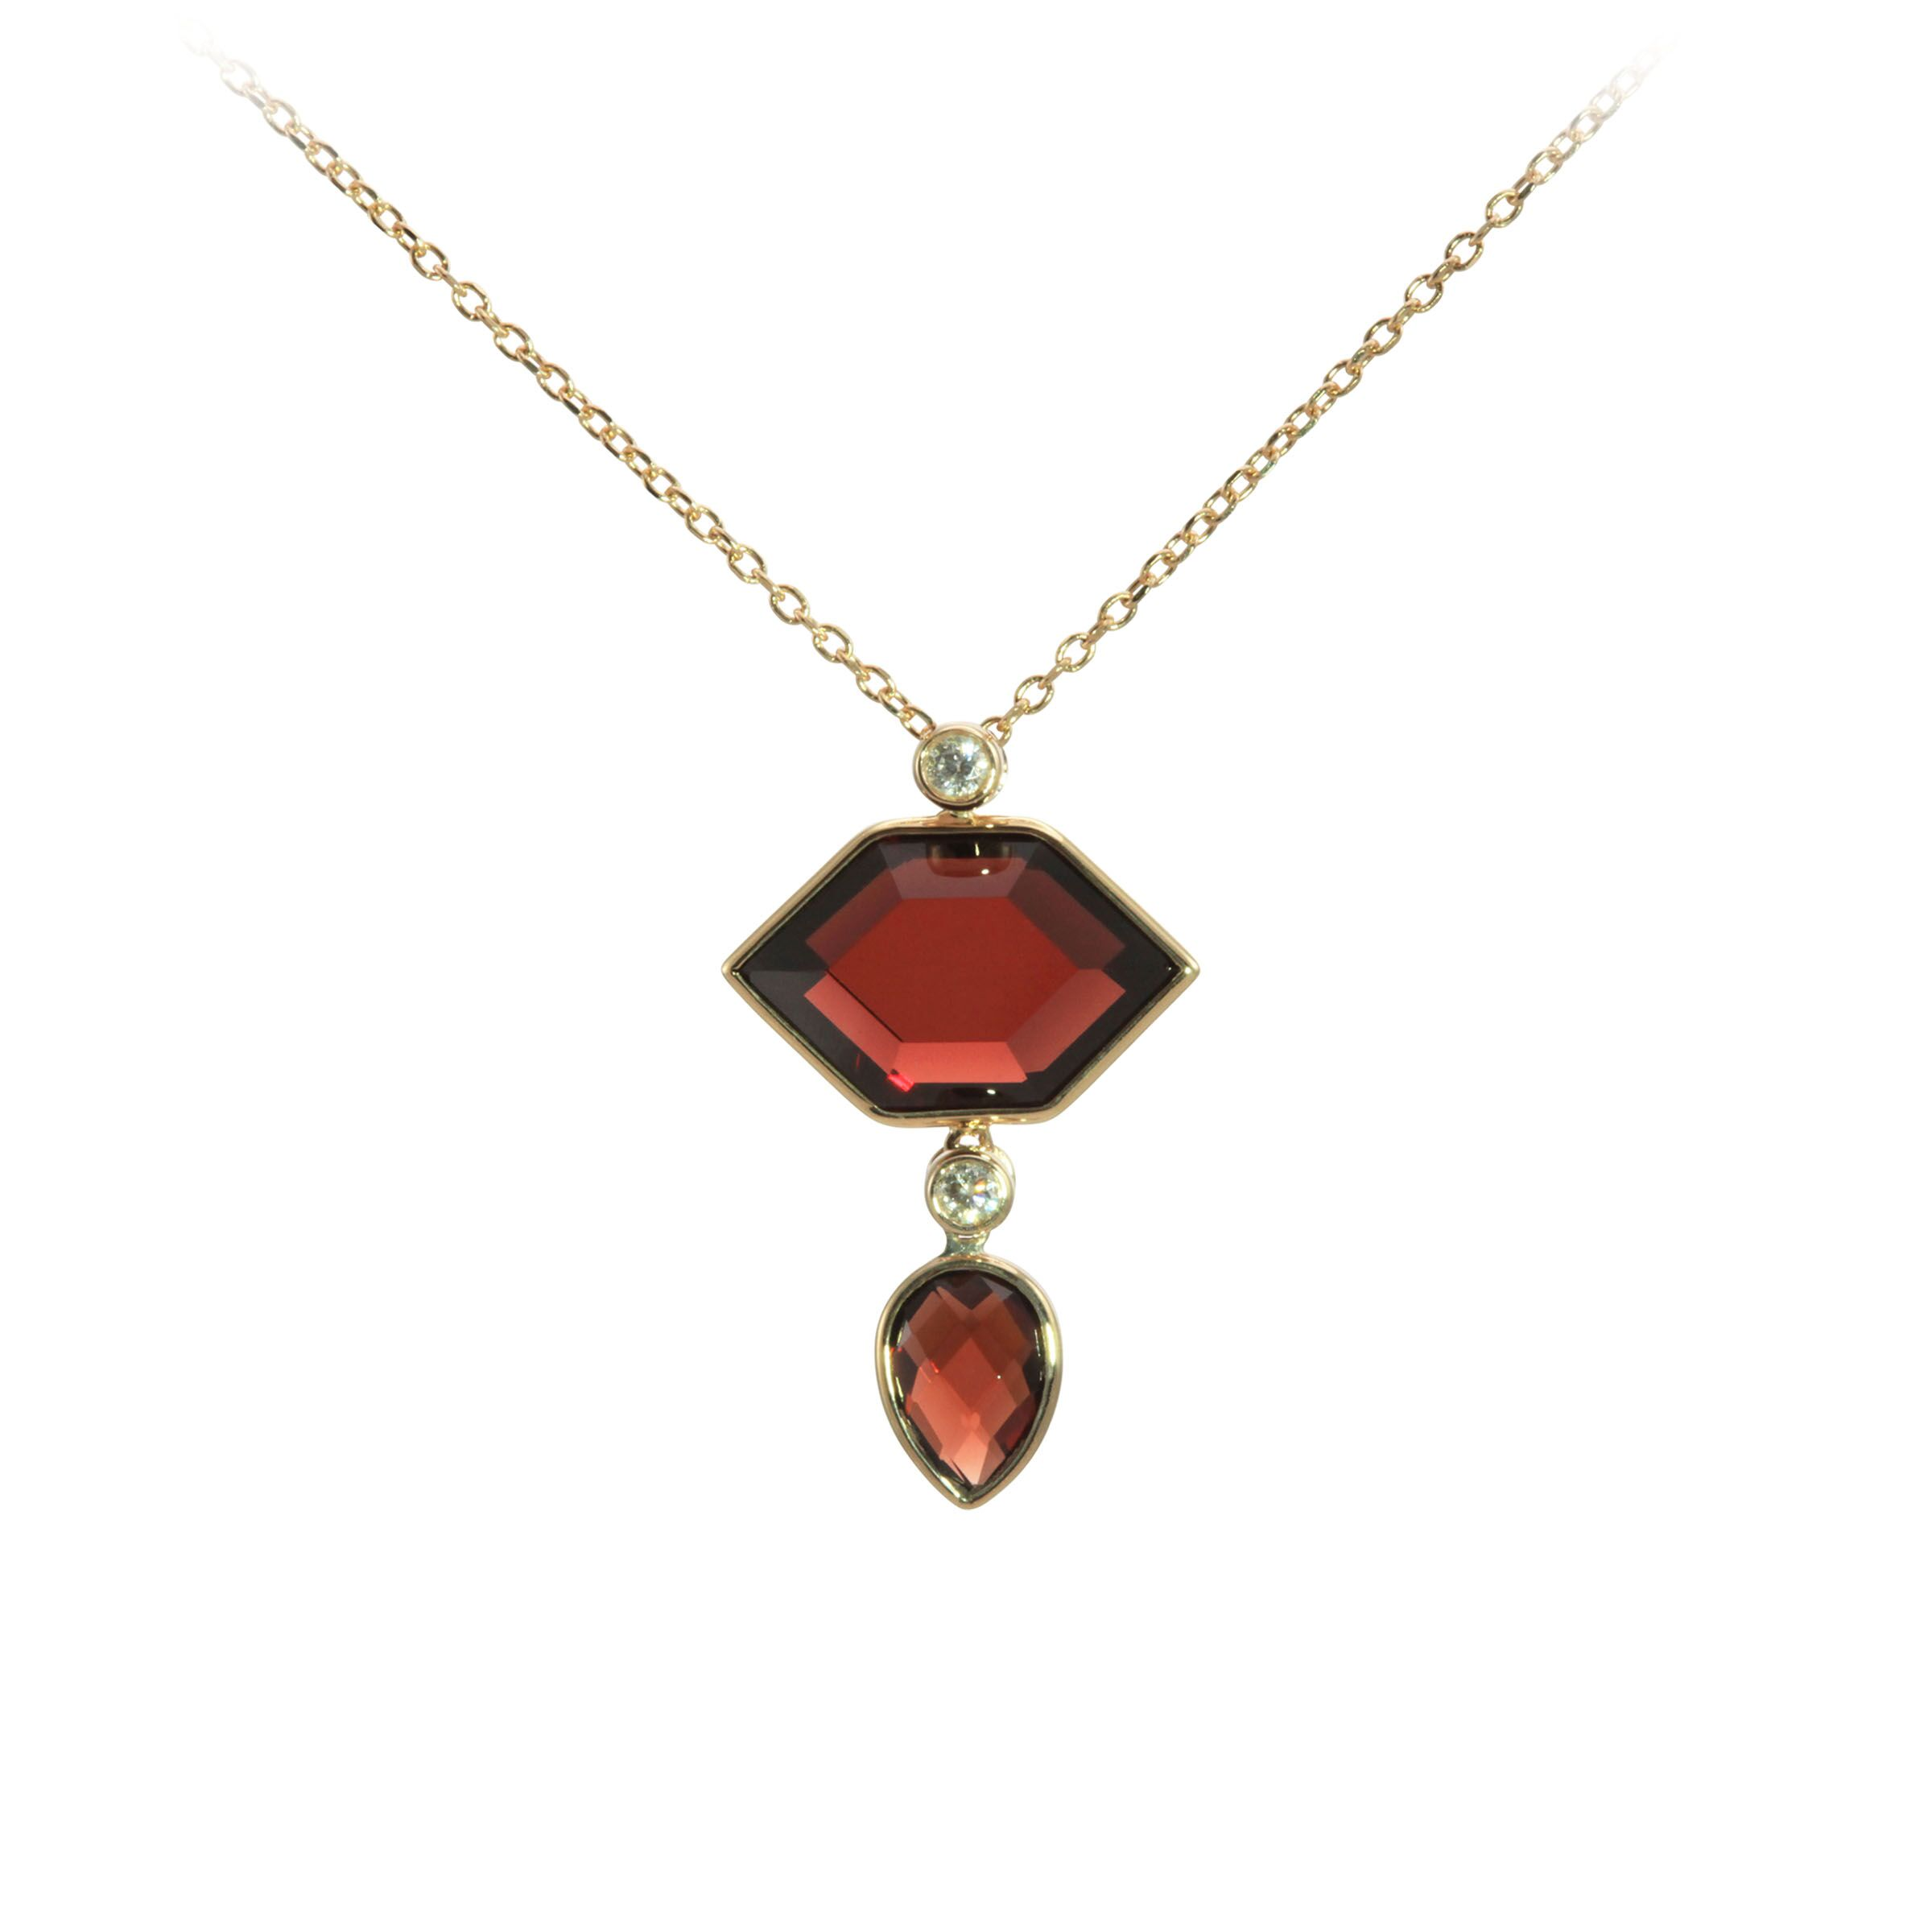 Gemstone Pendant by Oliva B